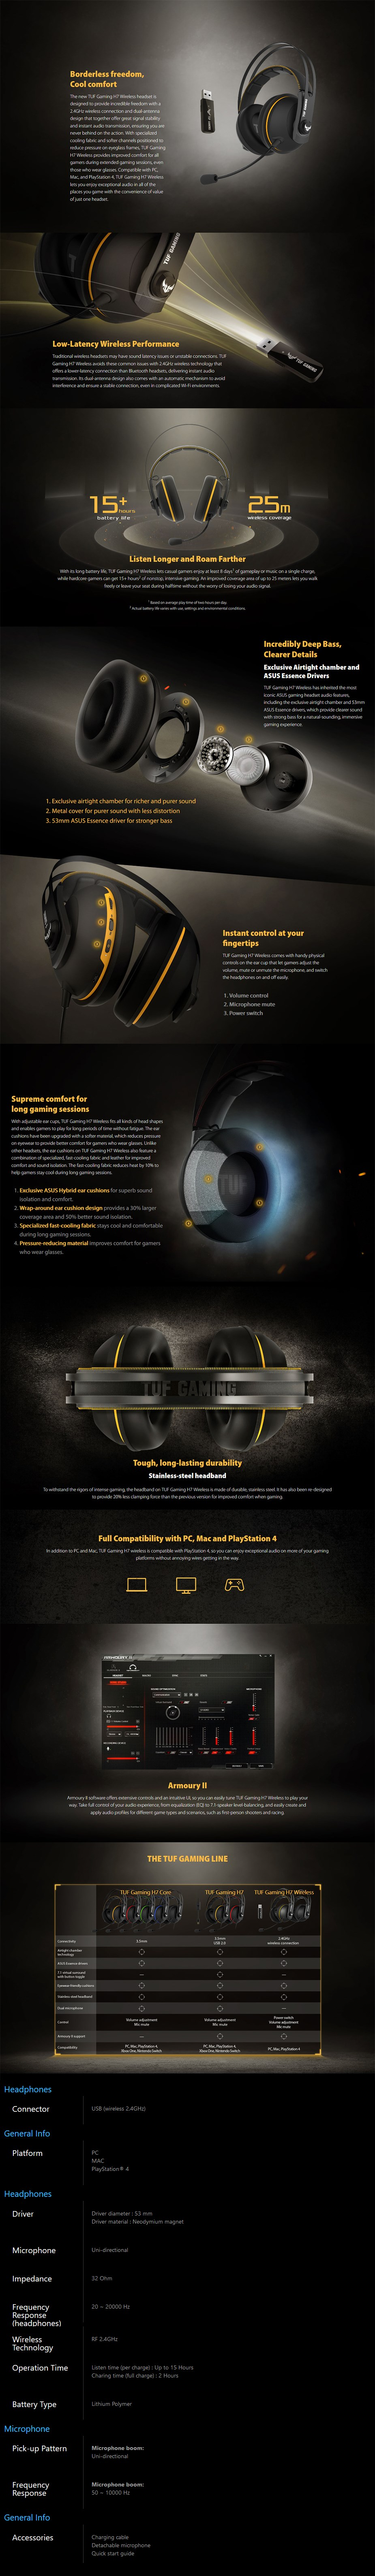 ASUS TUF Gaming H7 Wireless Gaming Headset - Overview 1